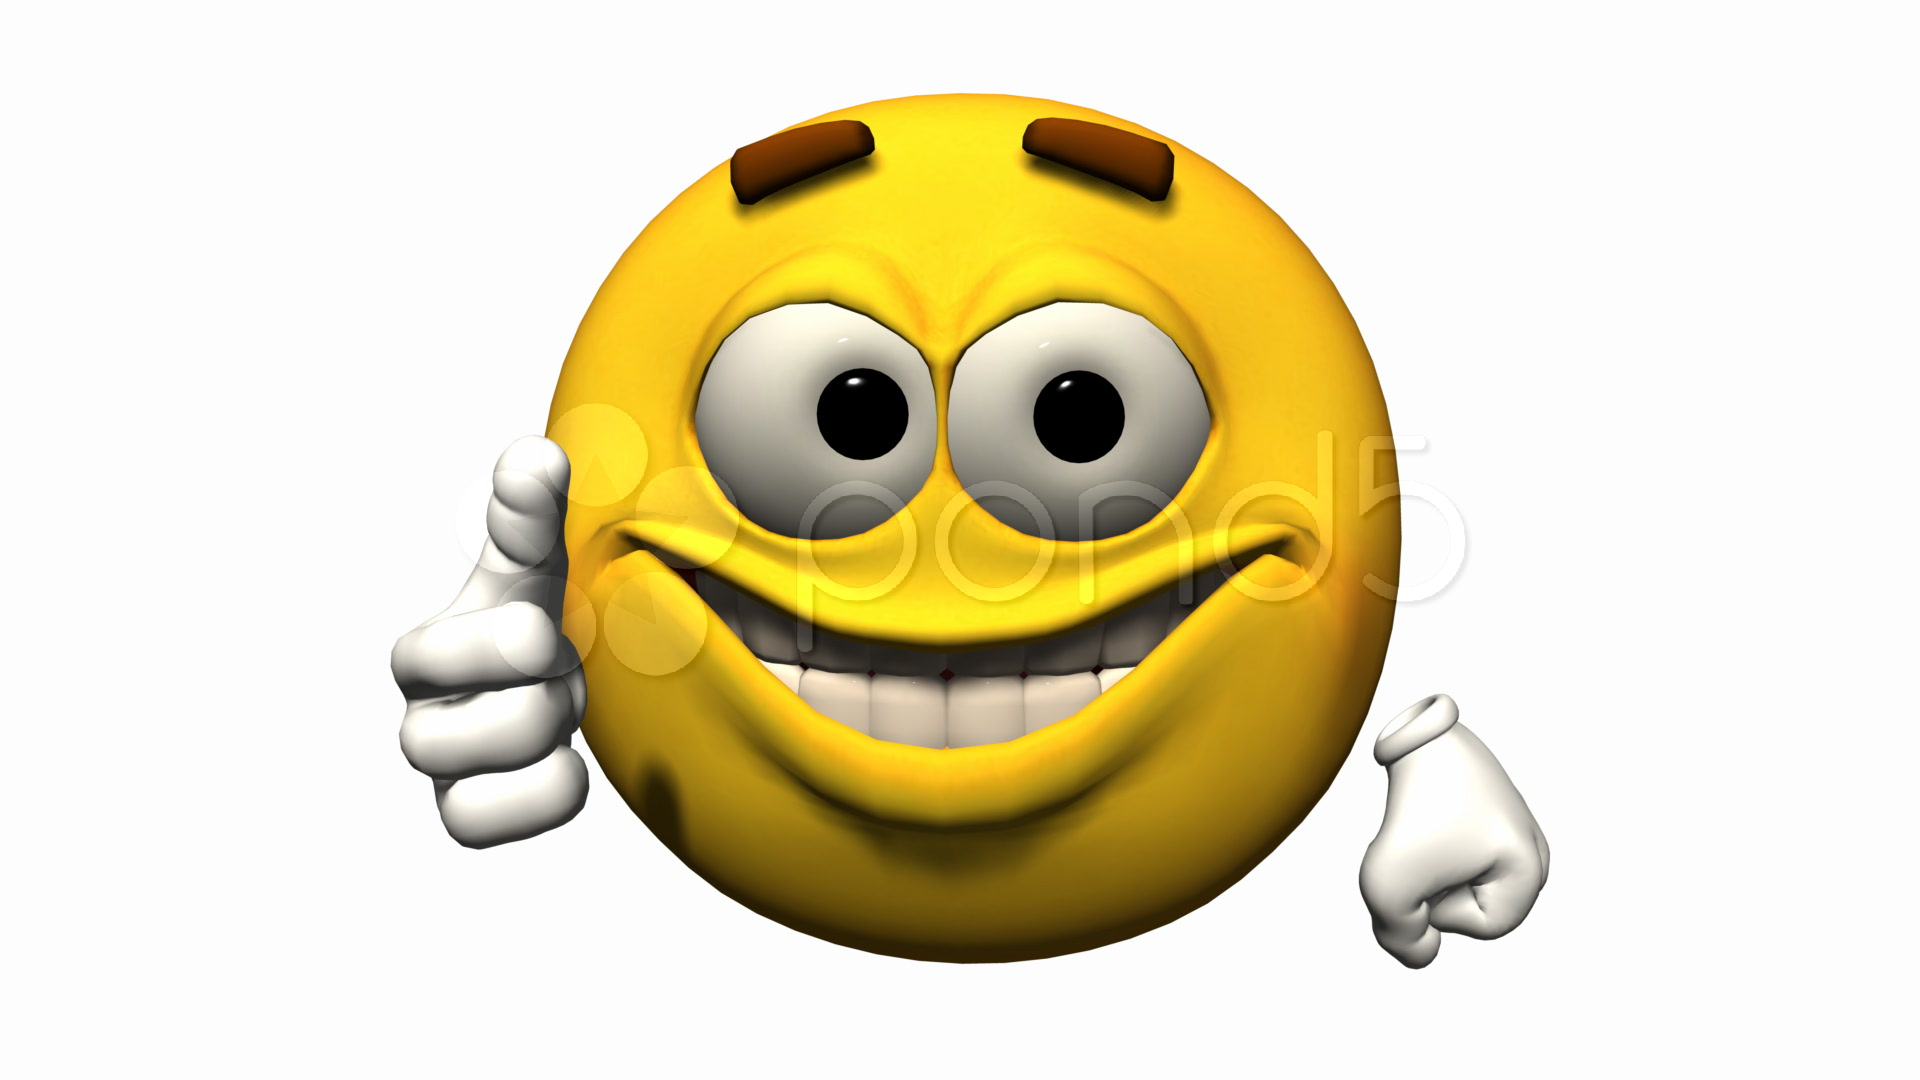 3D Smiley Animated Emoticons